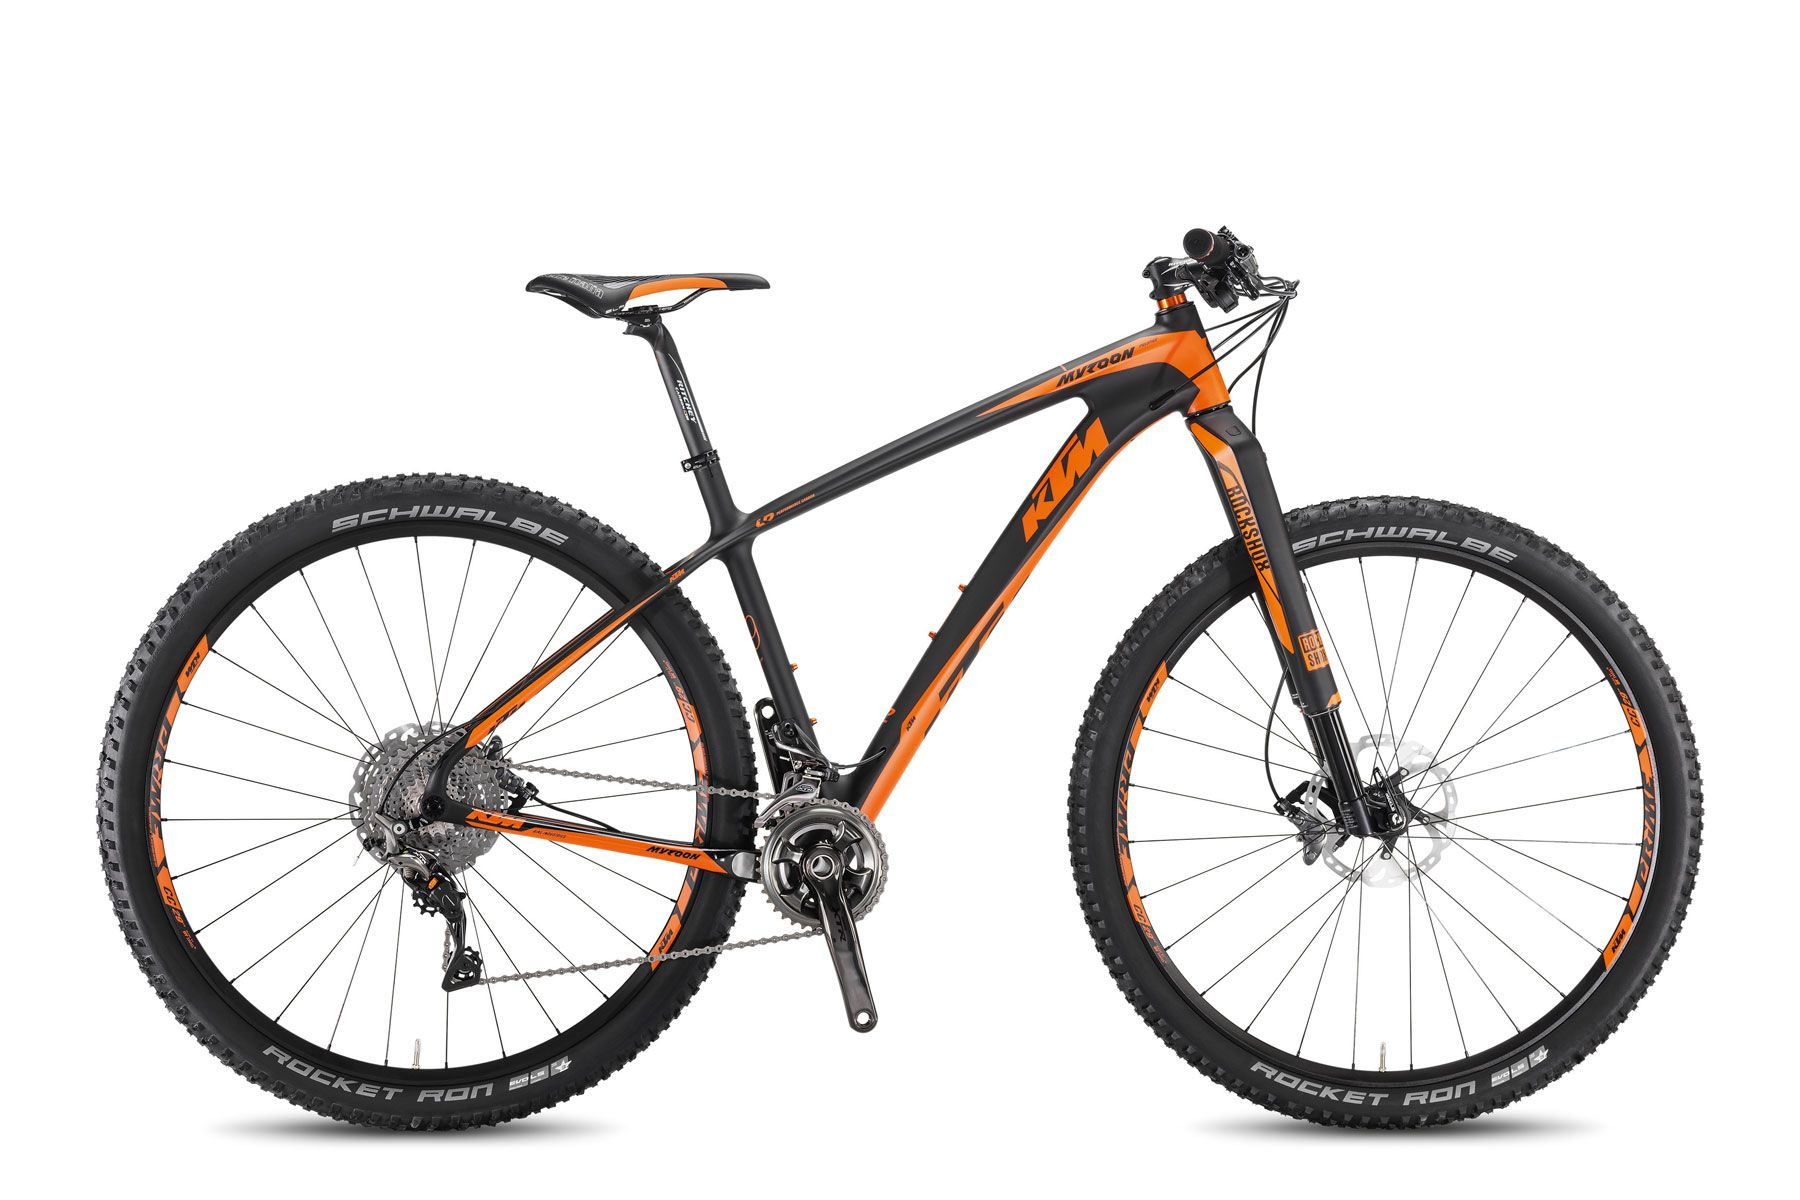 Hardtail Ktm Bike Industries Bicicleta Pinterest Mtb